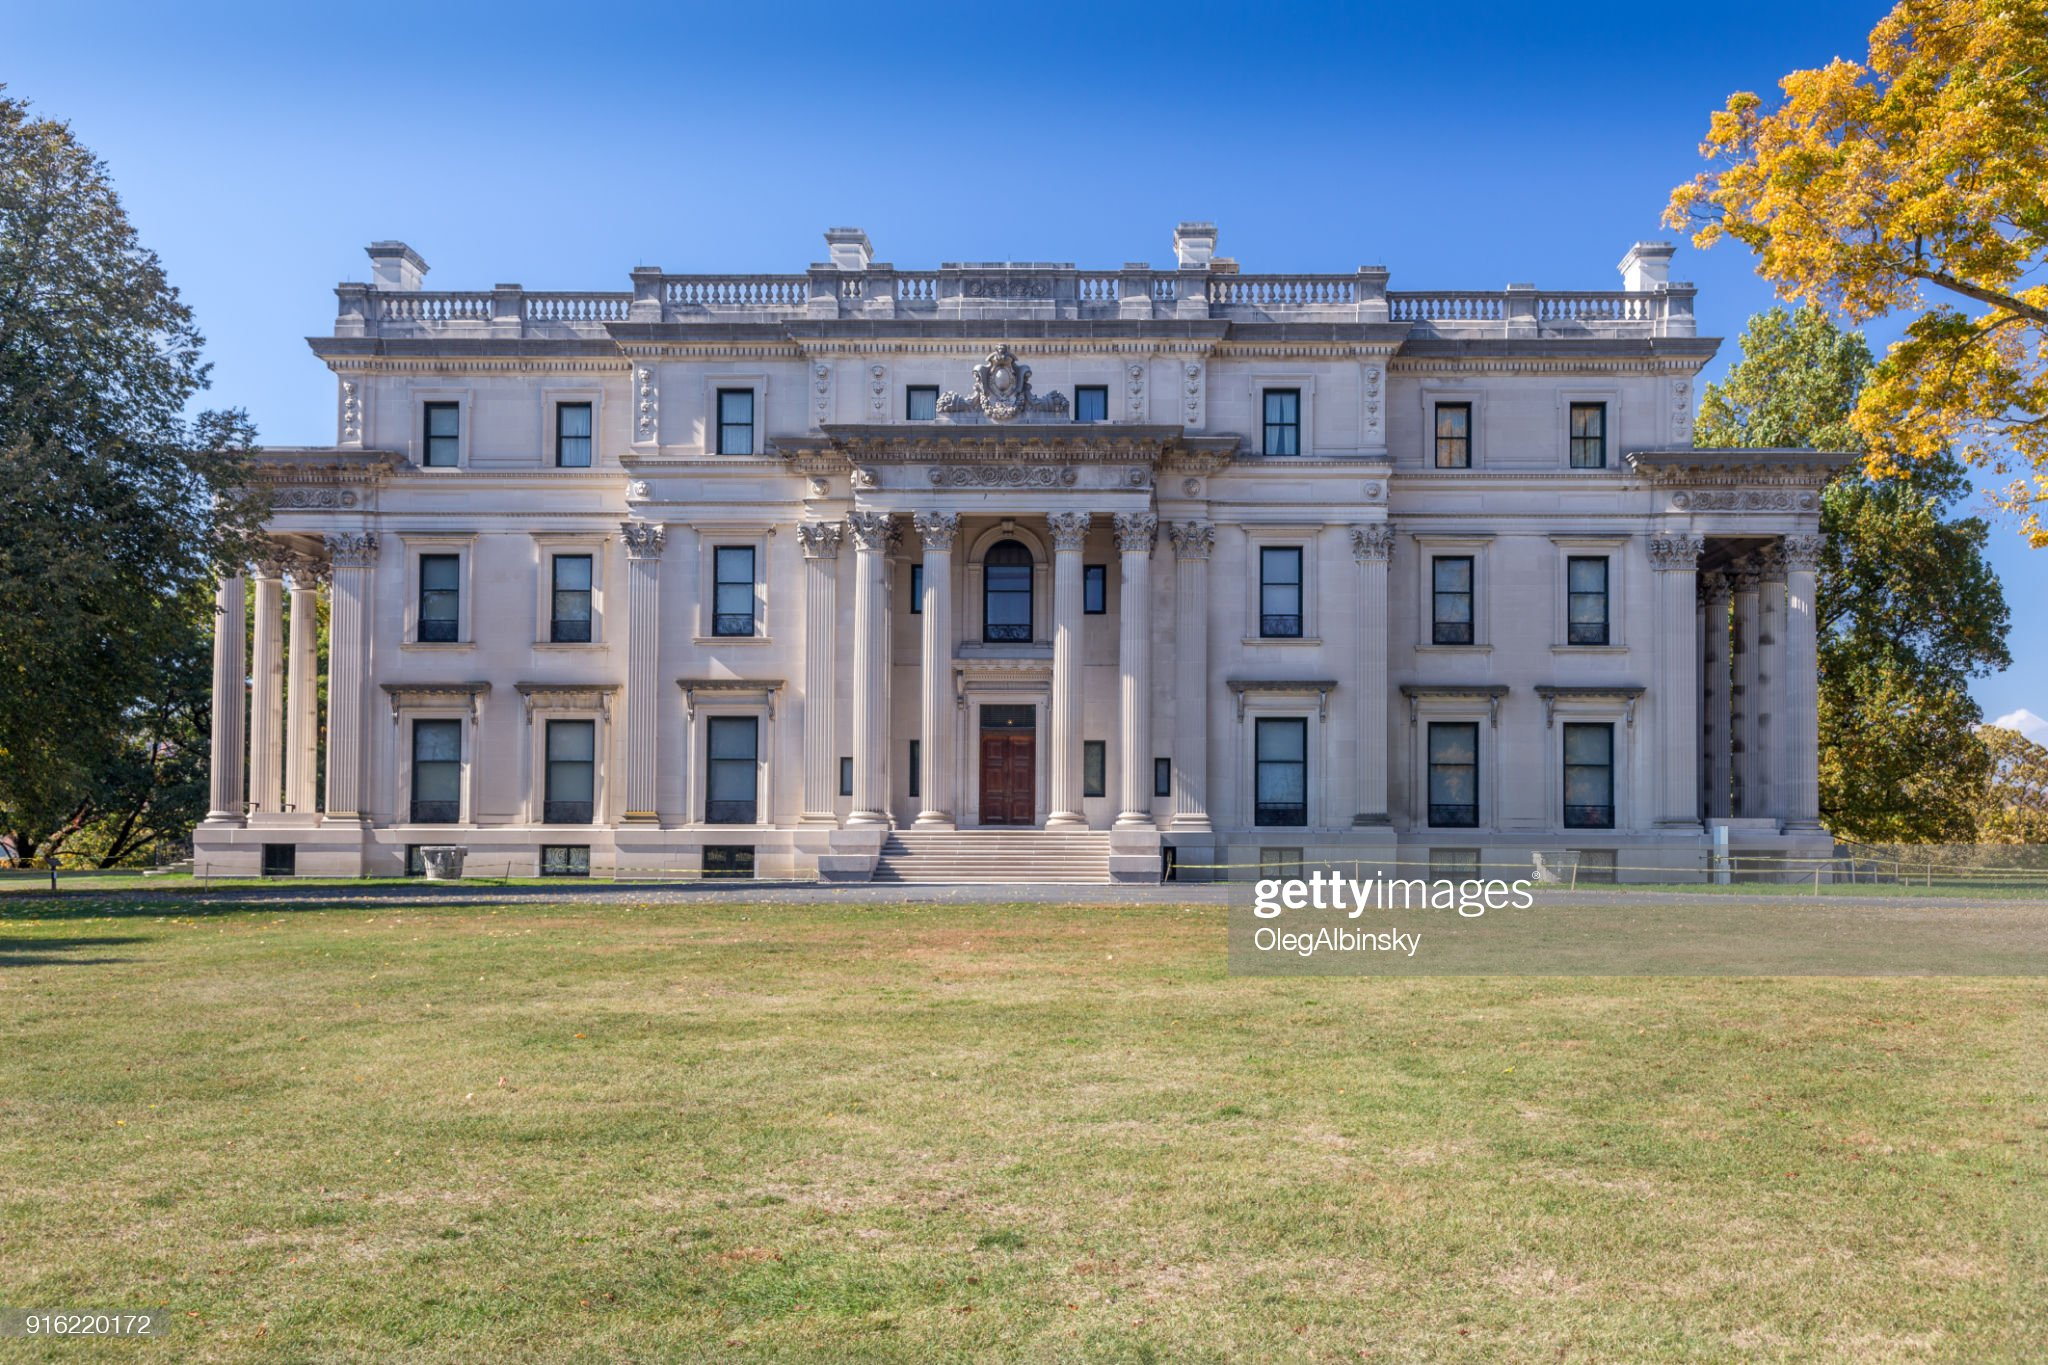 Vanderbilt Mansion National Historic Site with Trees in Fall Colors (Foliage) and Vivid Blue Sky, Hyde Park, New York. : Stock Photo